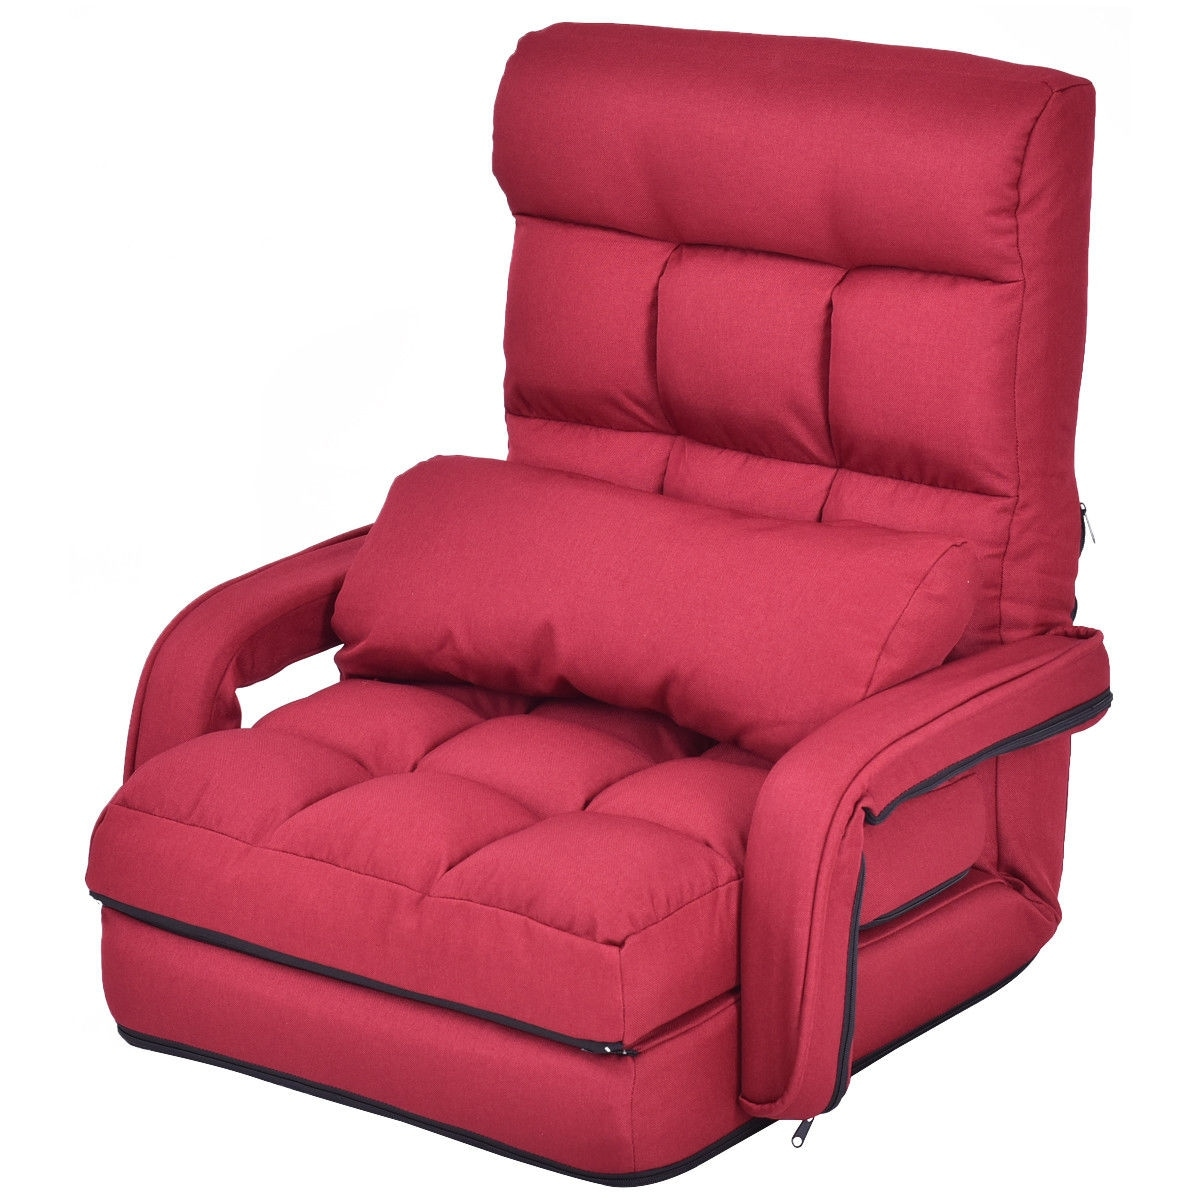 Enjoyable Gymax Red Folding Lazy Sofa Floor Chair Sofa Lounger Bed With Armrests And A Pillow Caraccident5 Cool Chair Designs And Ideas Caraccident5Info